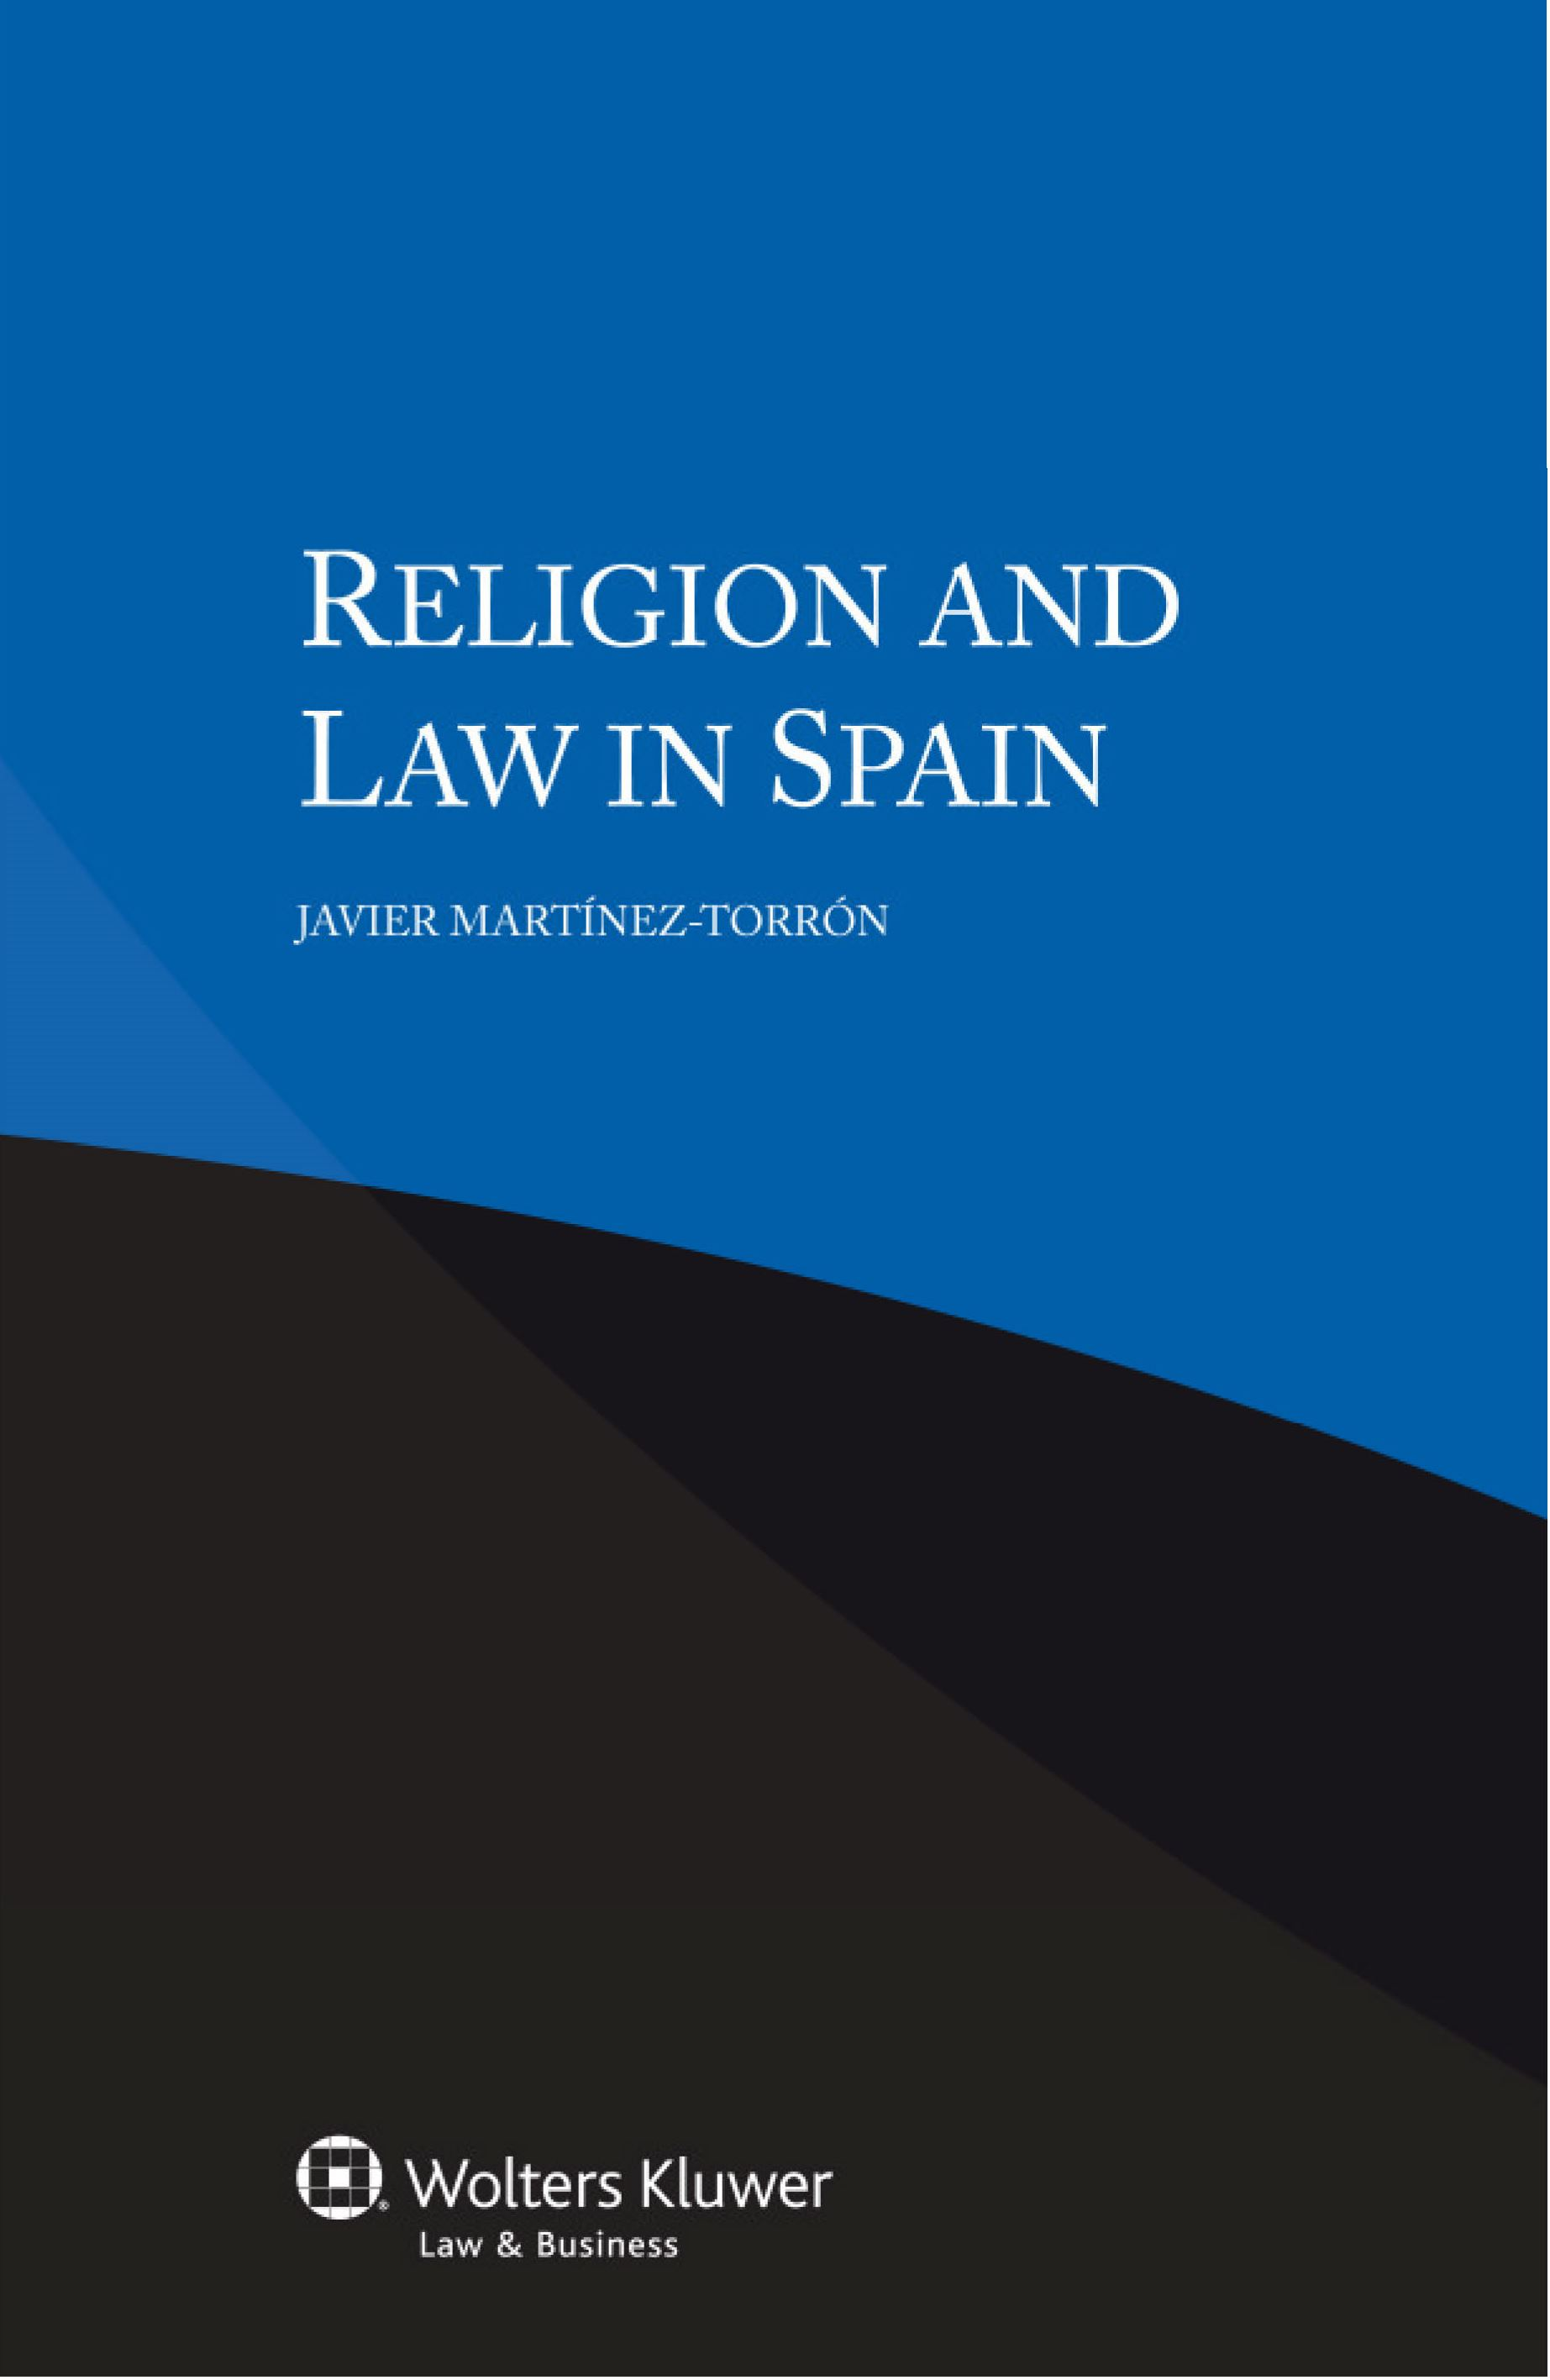 Image for Religion and Law in Spain